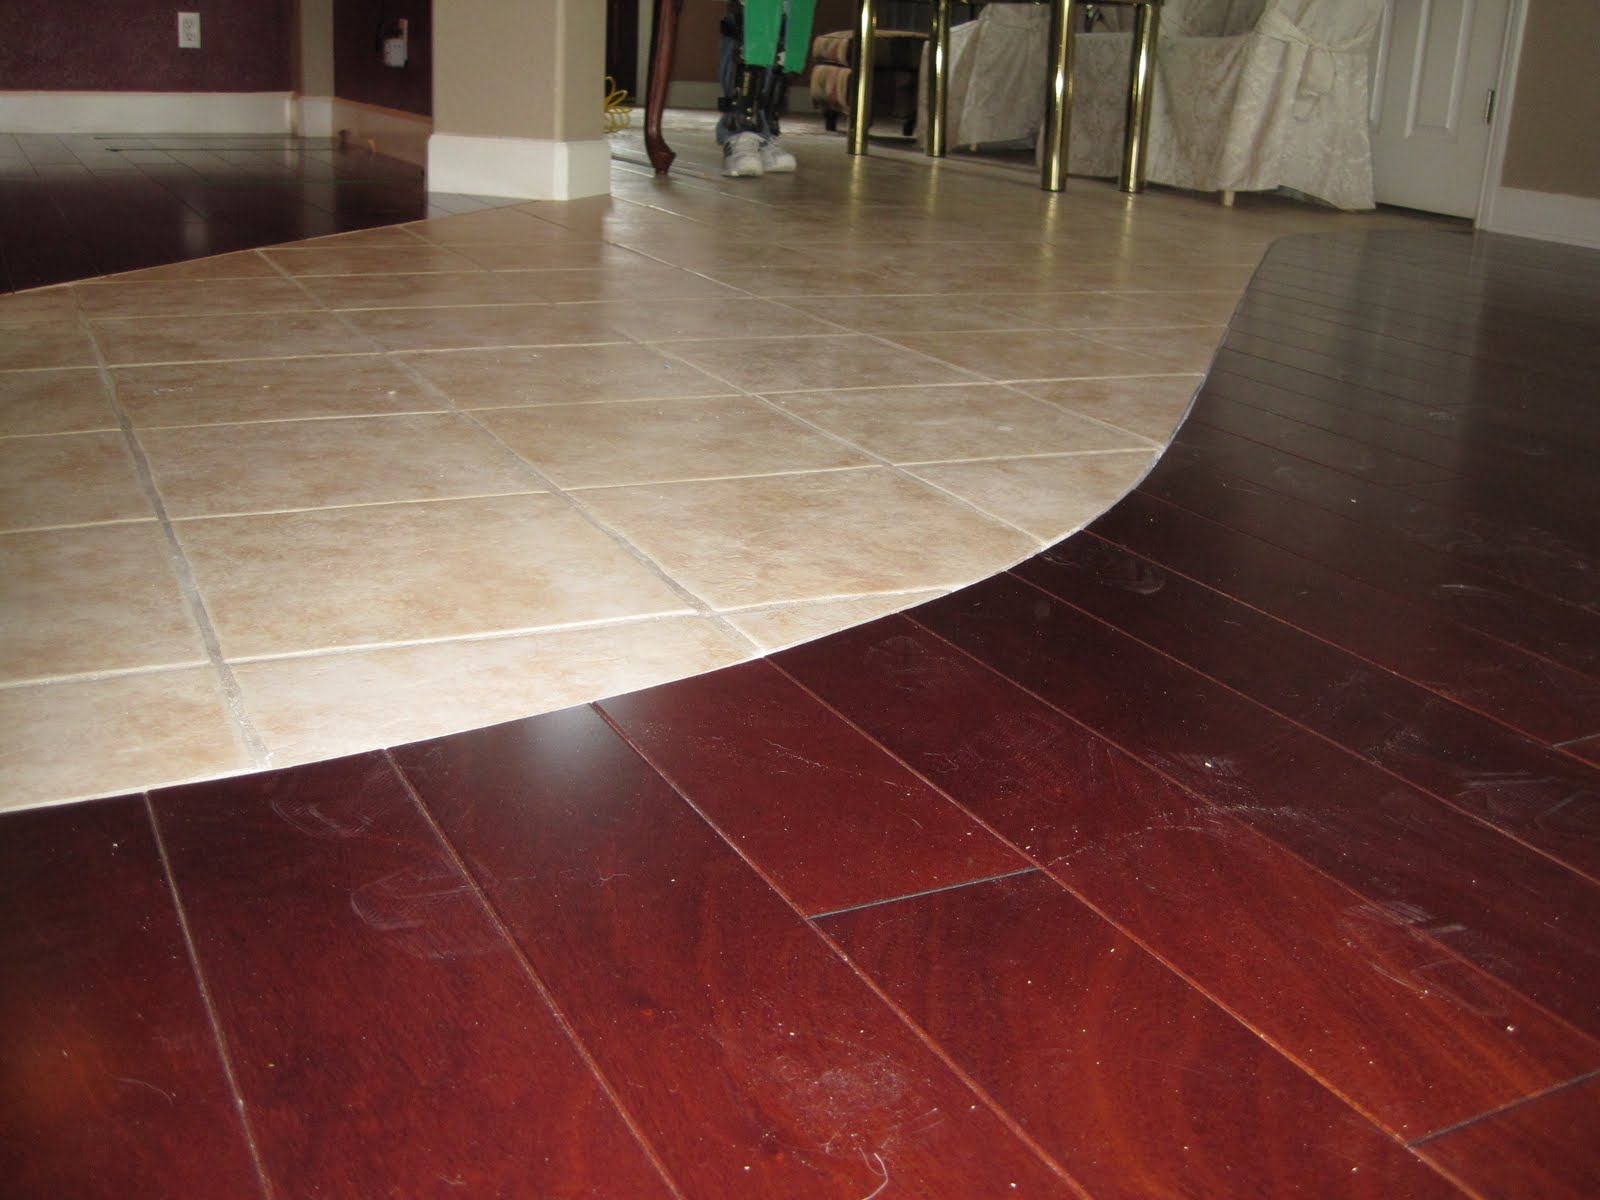 Simas Floor And Design Company Serrano Home With Curved Path